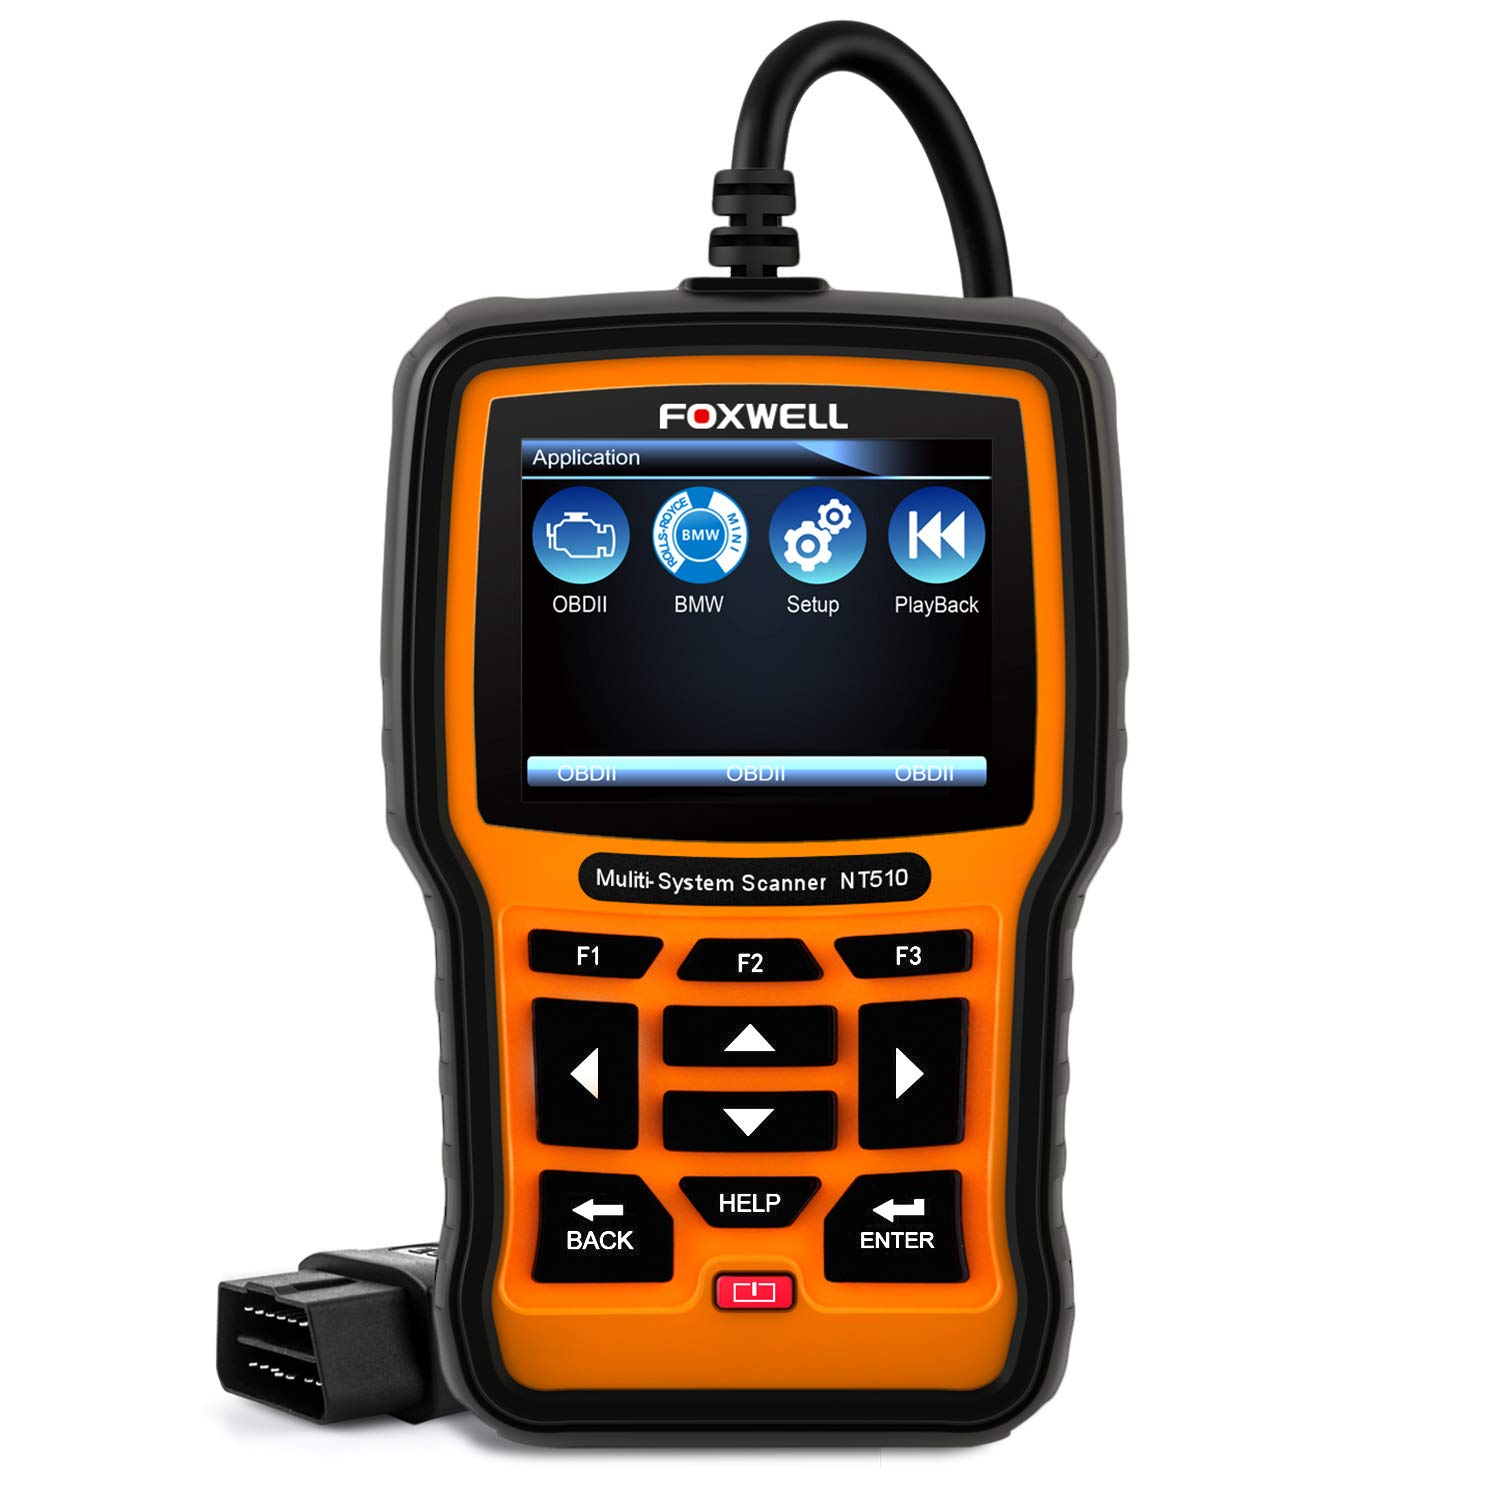 FOXWELL NT510 BMW Scan Tool Automotive OBD II Obd2 Code Reader, ABS/SRS/EPB/Transmission Diagnostic Scanner with OIL Service Reset, ABS Reset Service Functions Shenzhen Foxwell Technology Co. Ltd.